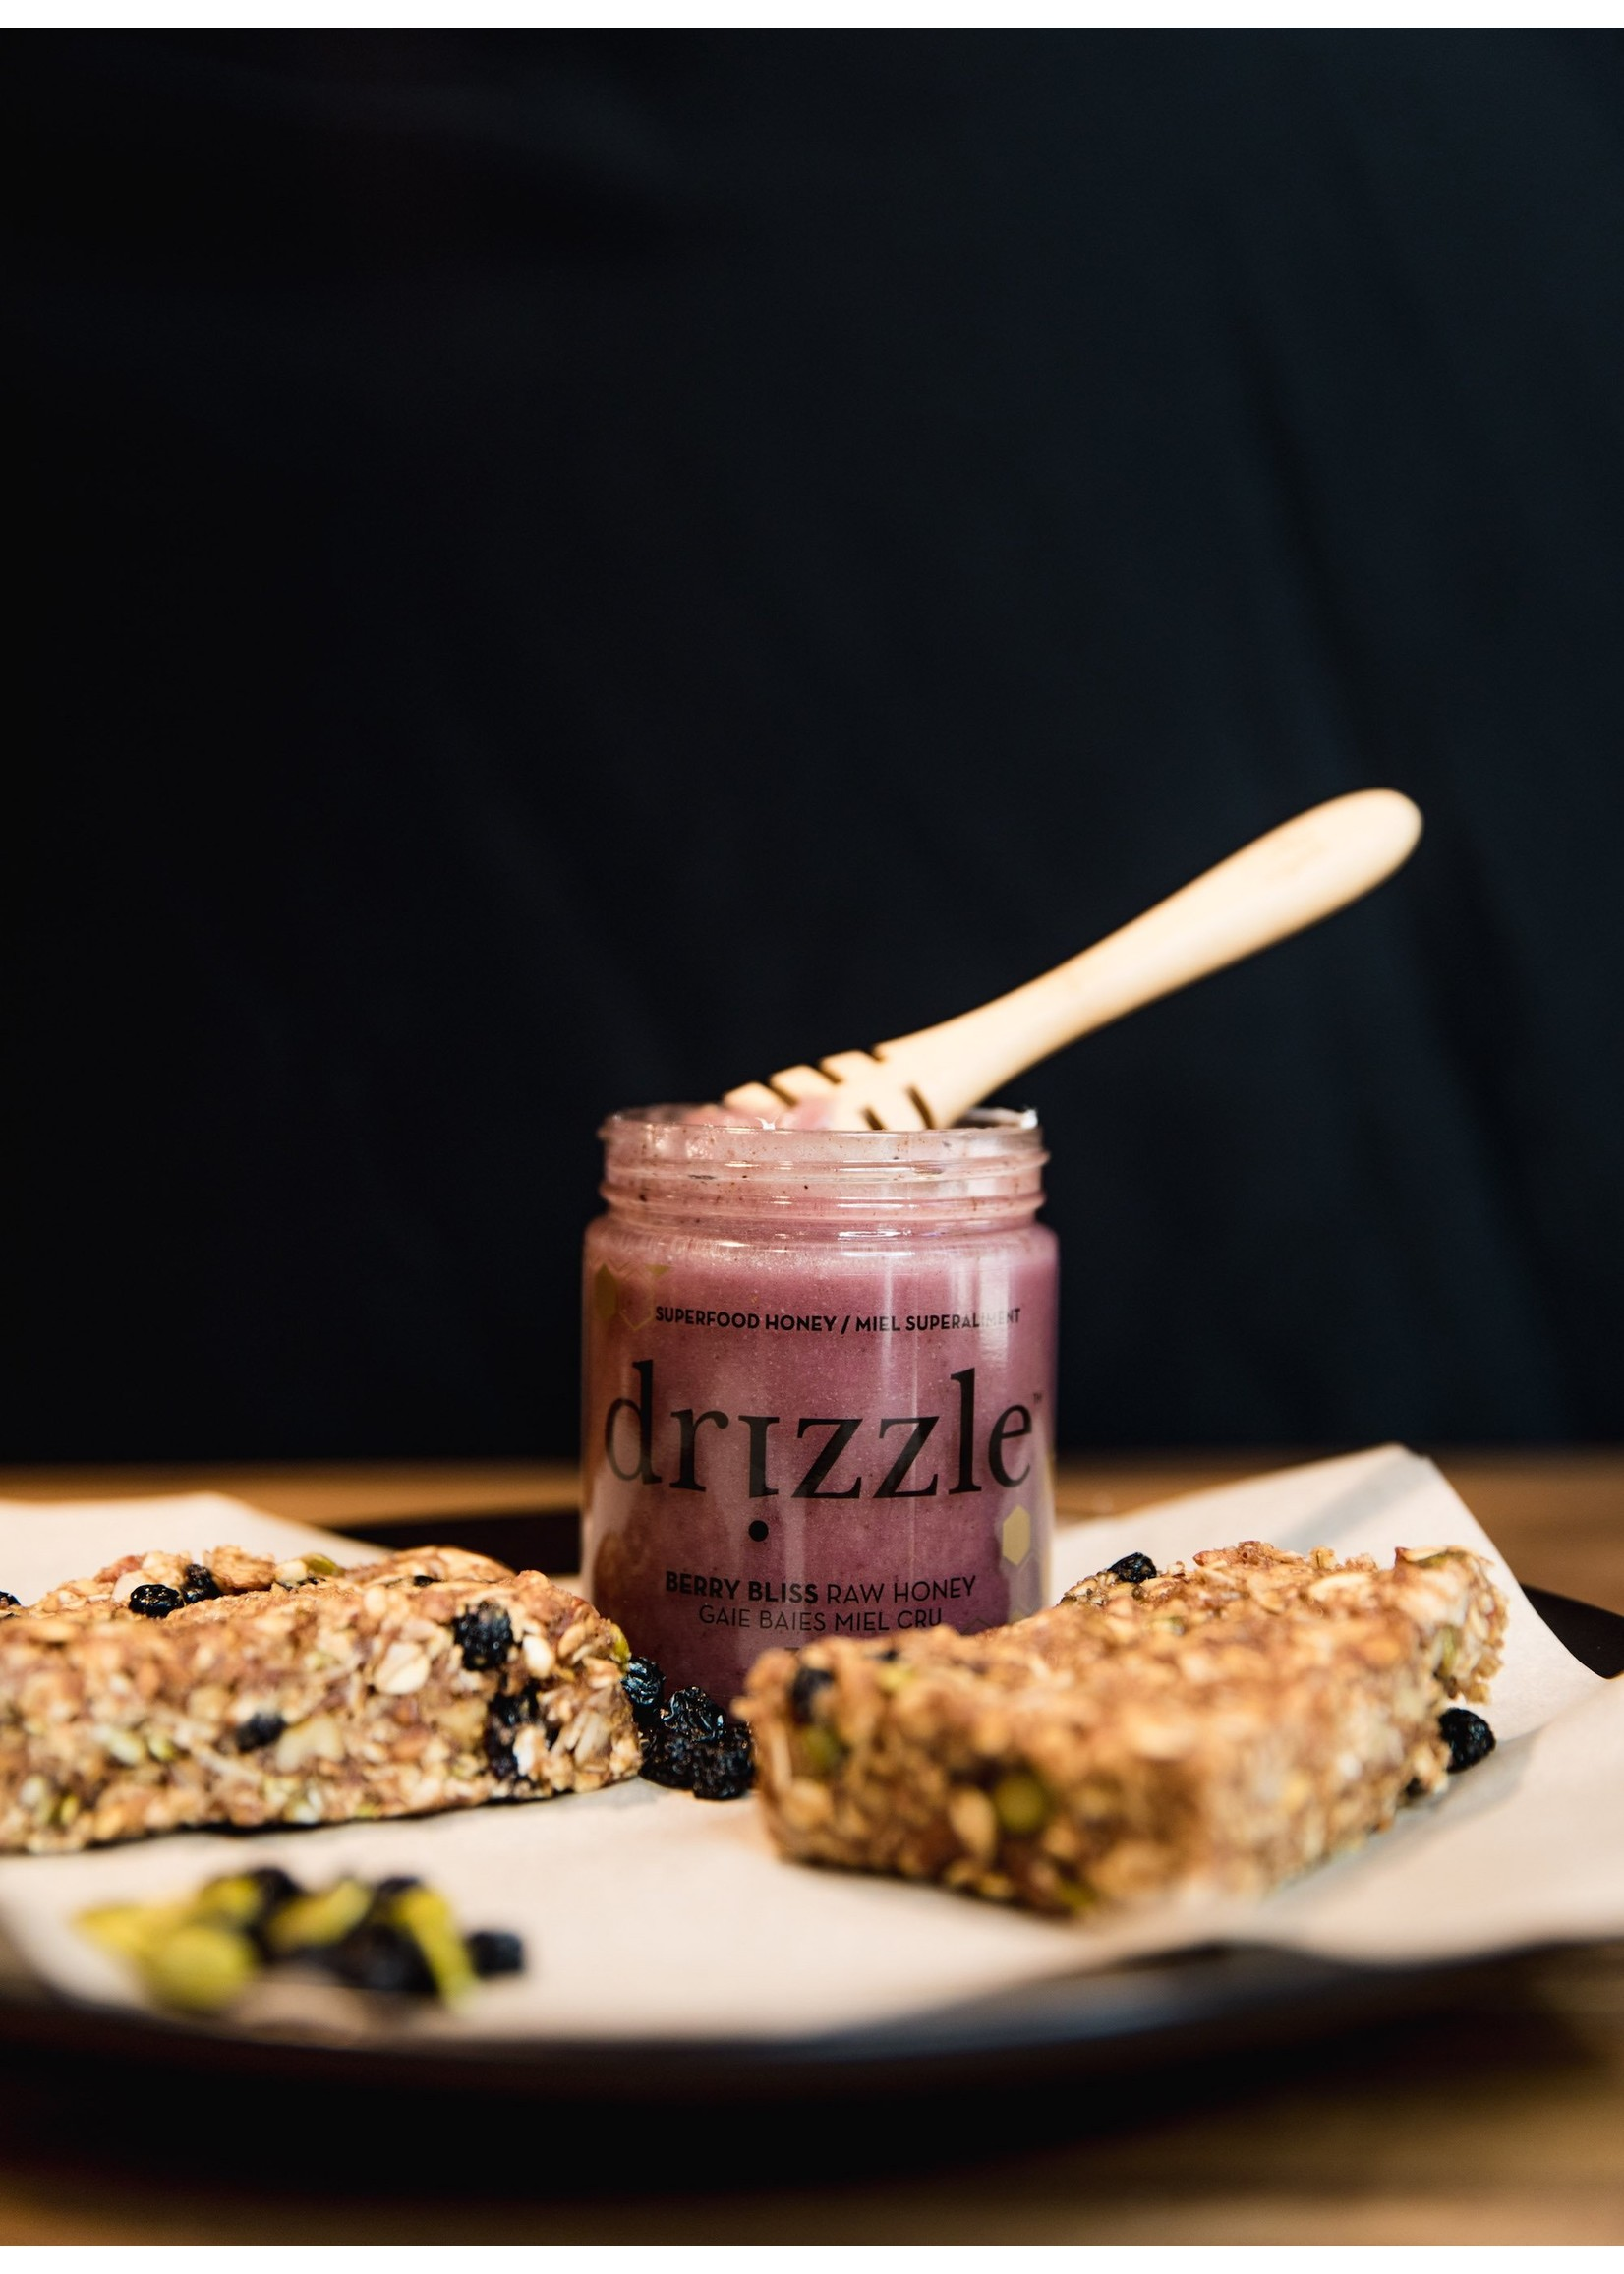 Drizzle Honey Berry Bliss Superfood Honey